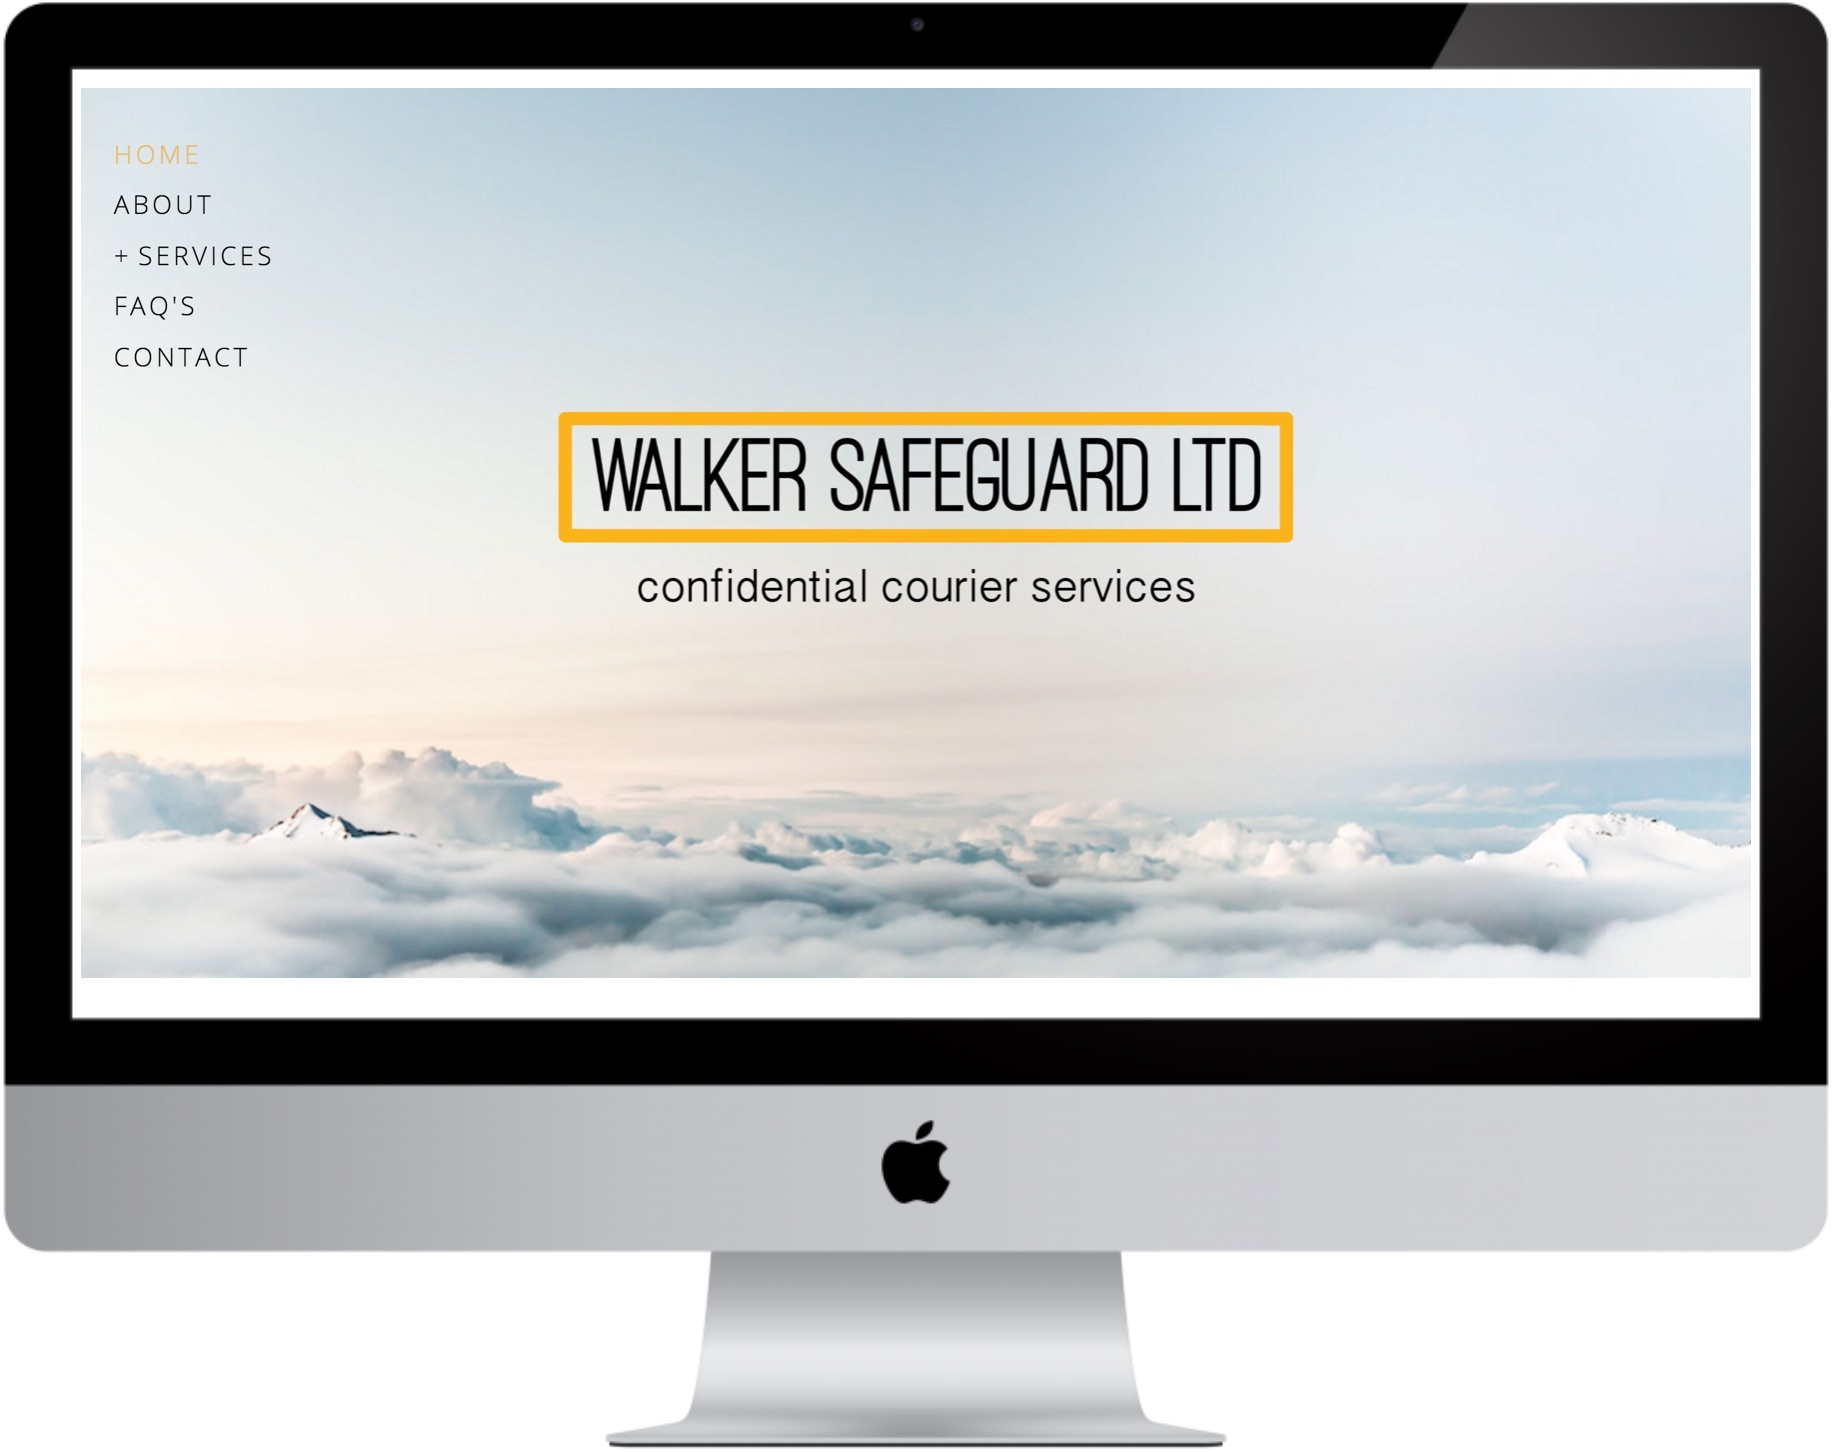 Walker Safeguard Ltd